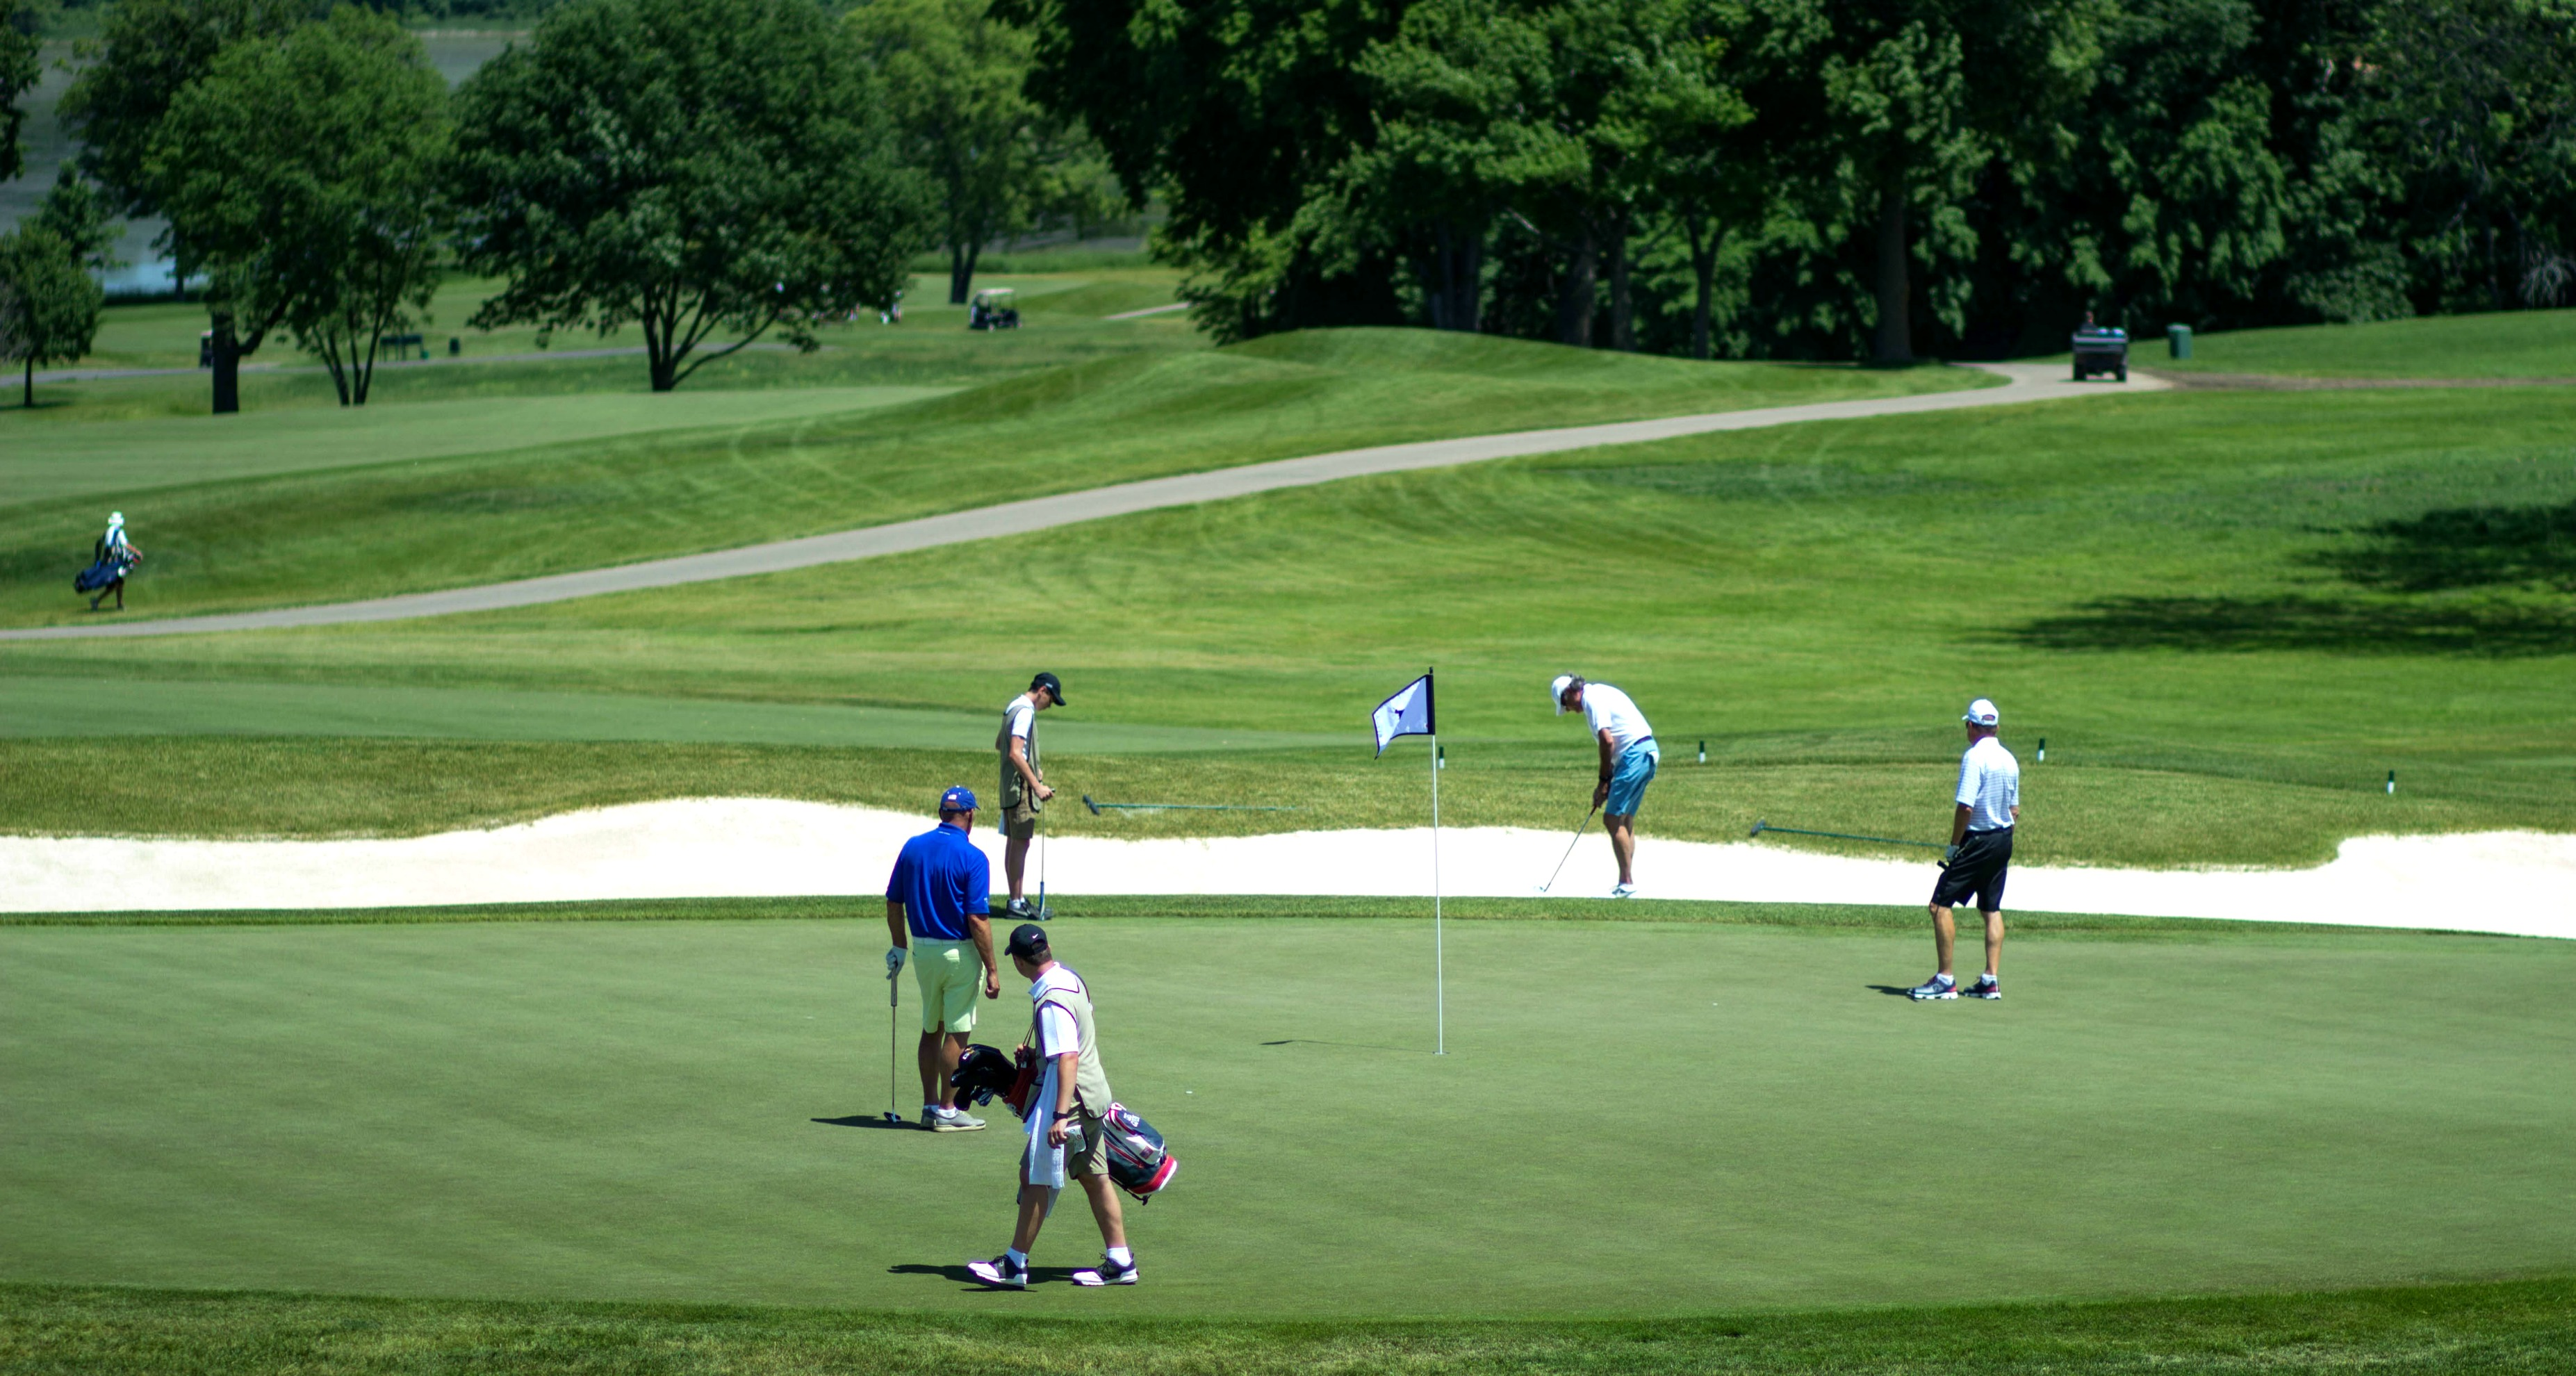 Golfers and caddies on the green during a private golf tournament at Hazeltine National Golf Club